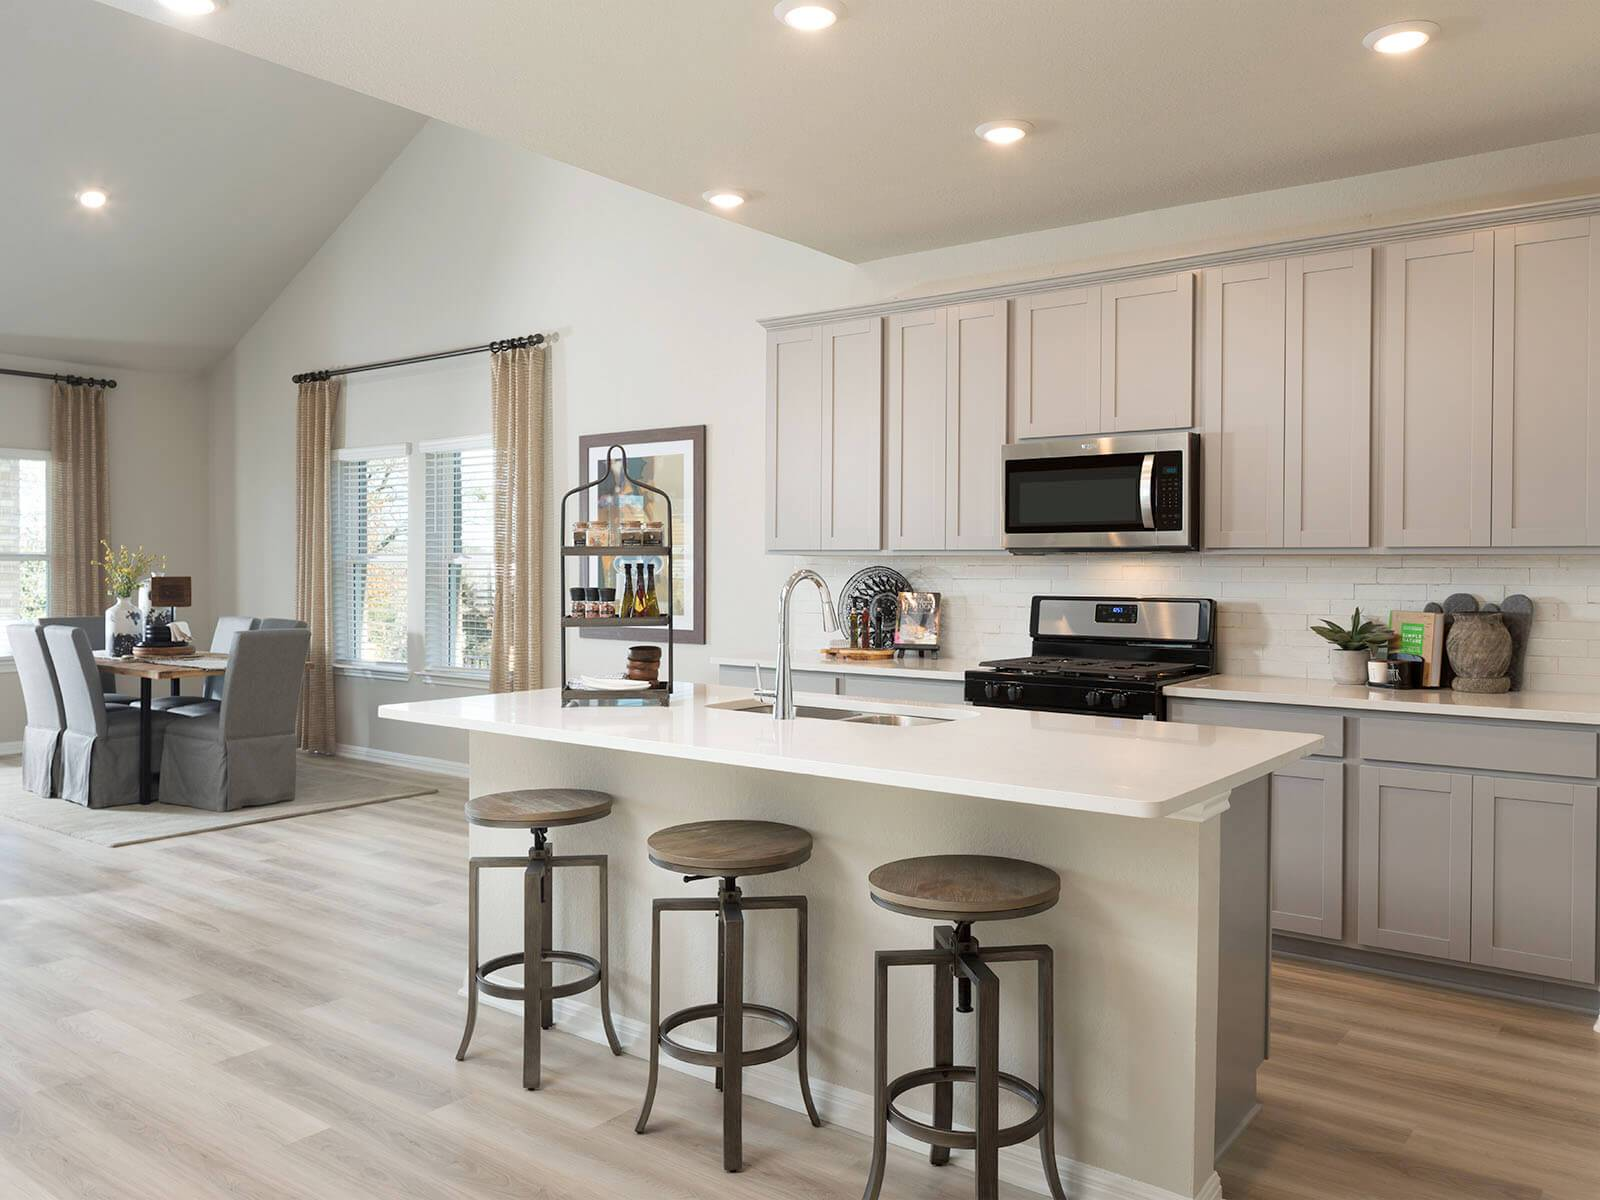 Kitchen featured in The Kessler (454) By Meritage Homes in Austin, TX